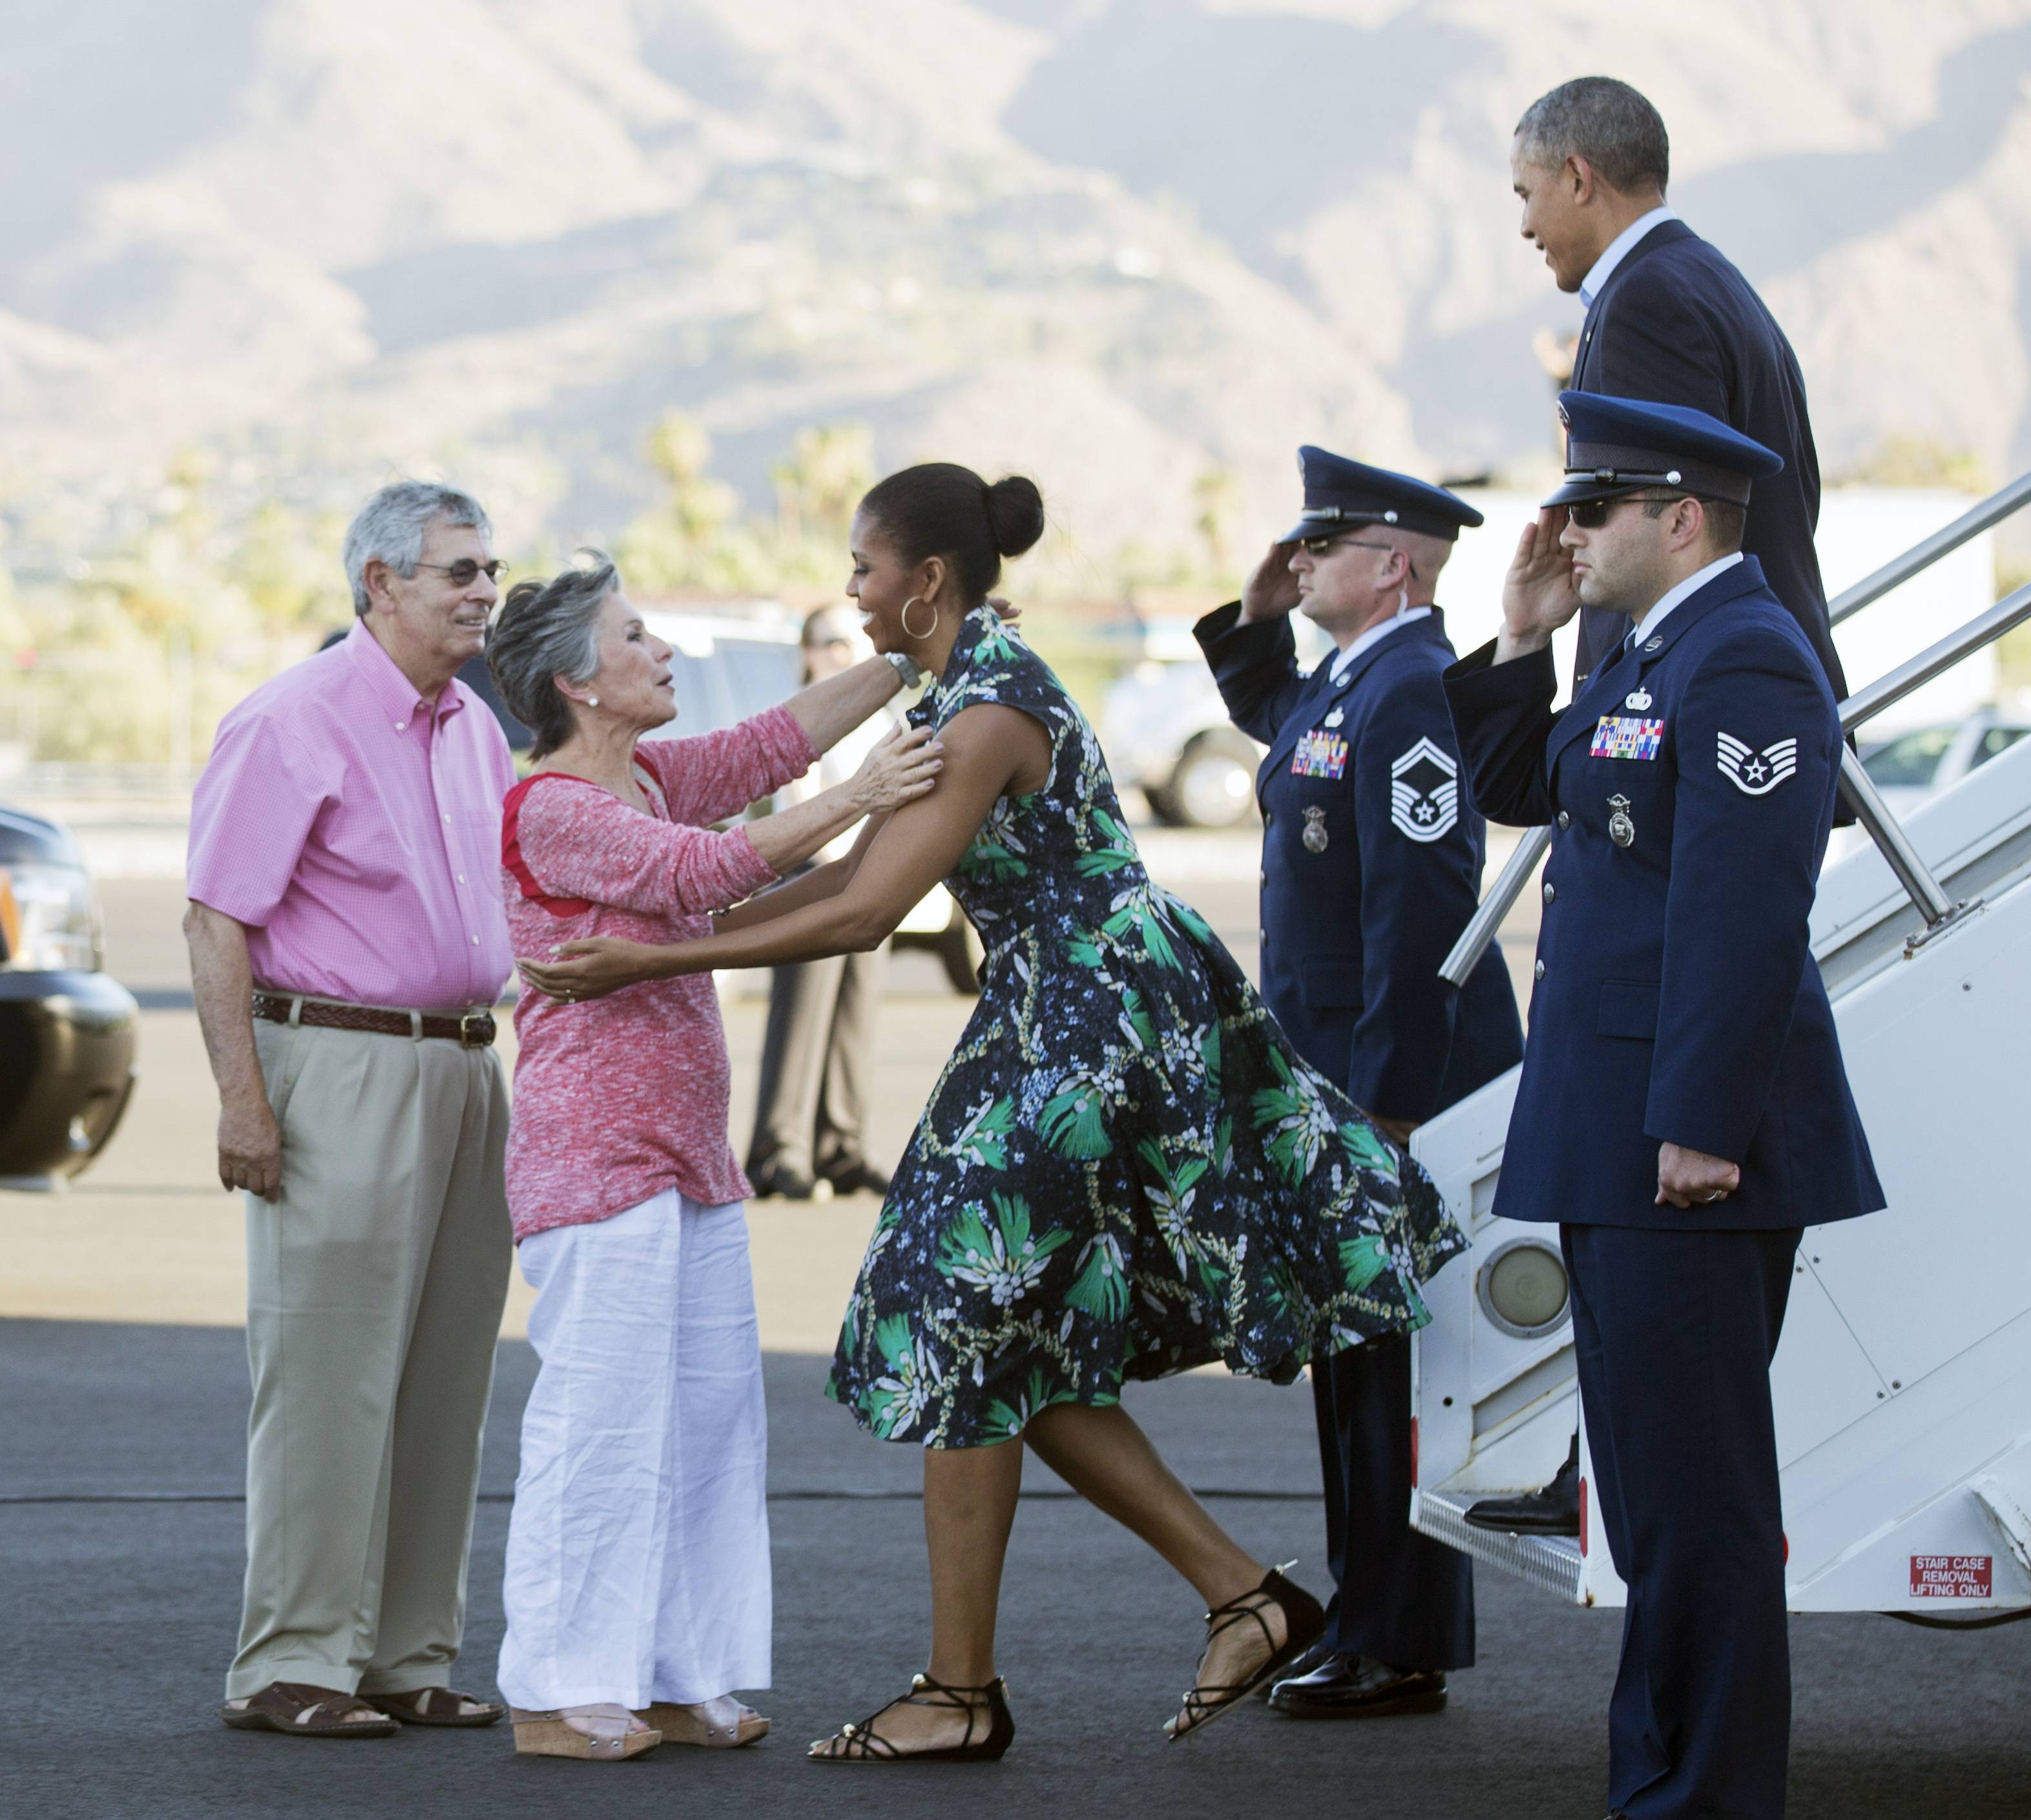 President Barack Obama and first lady Michelle Obama, are greeted on the tarmac by Sen. Barbara Boxer, D-Calif., second from left, and her husband Stewart Boxer, left, as they arrive on Friday in Palm Springs, Calif. — where the Obamas escaped on vacation for Father's Day weekend.